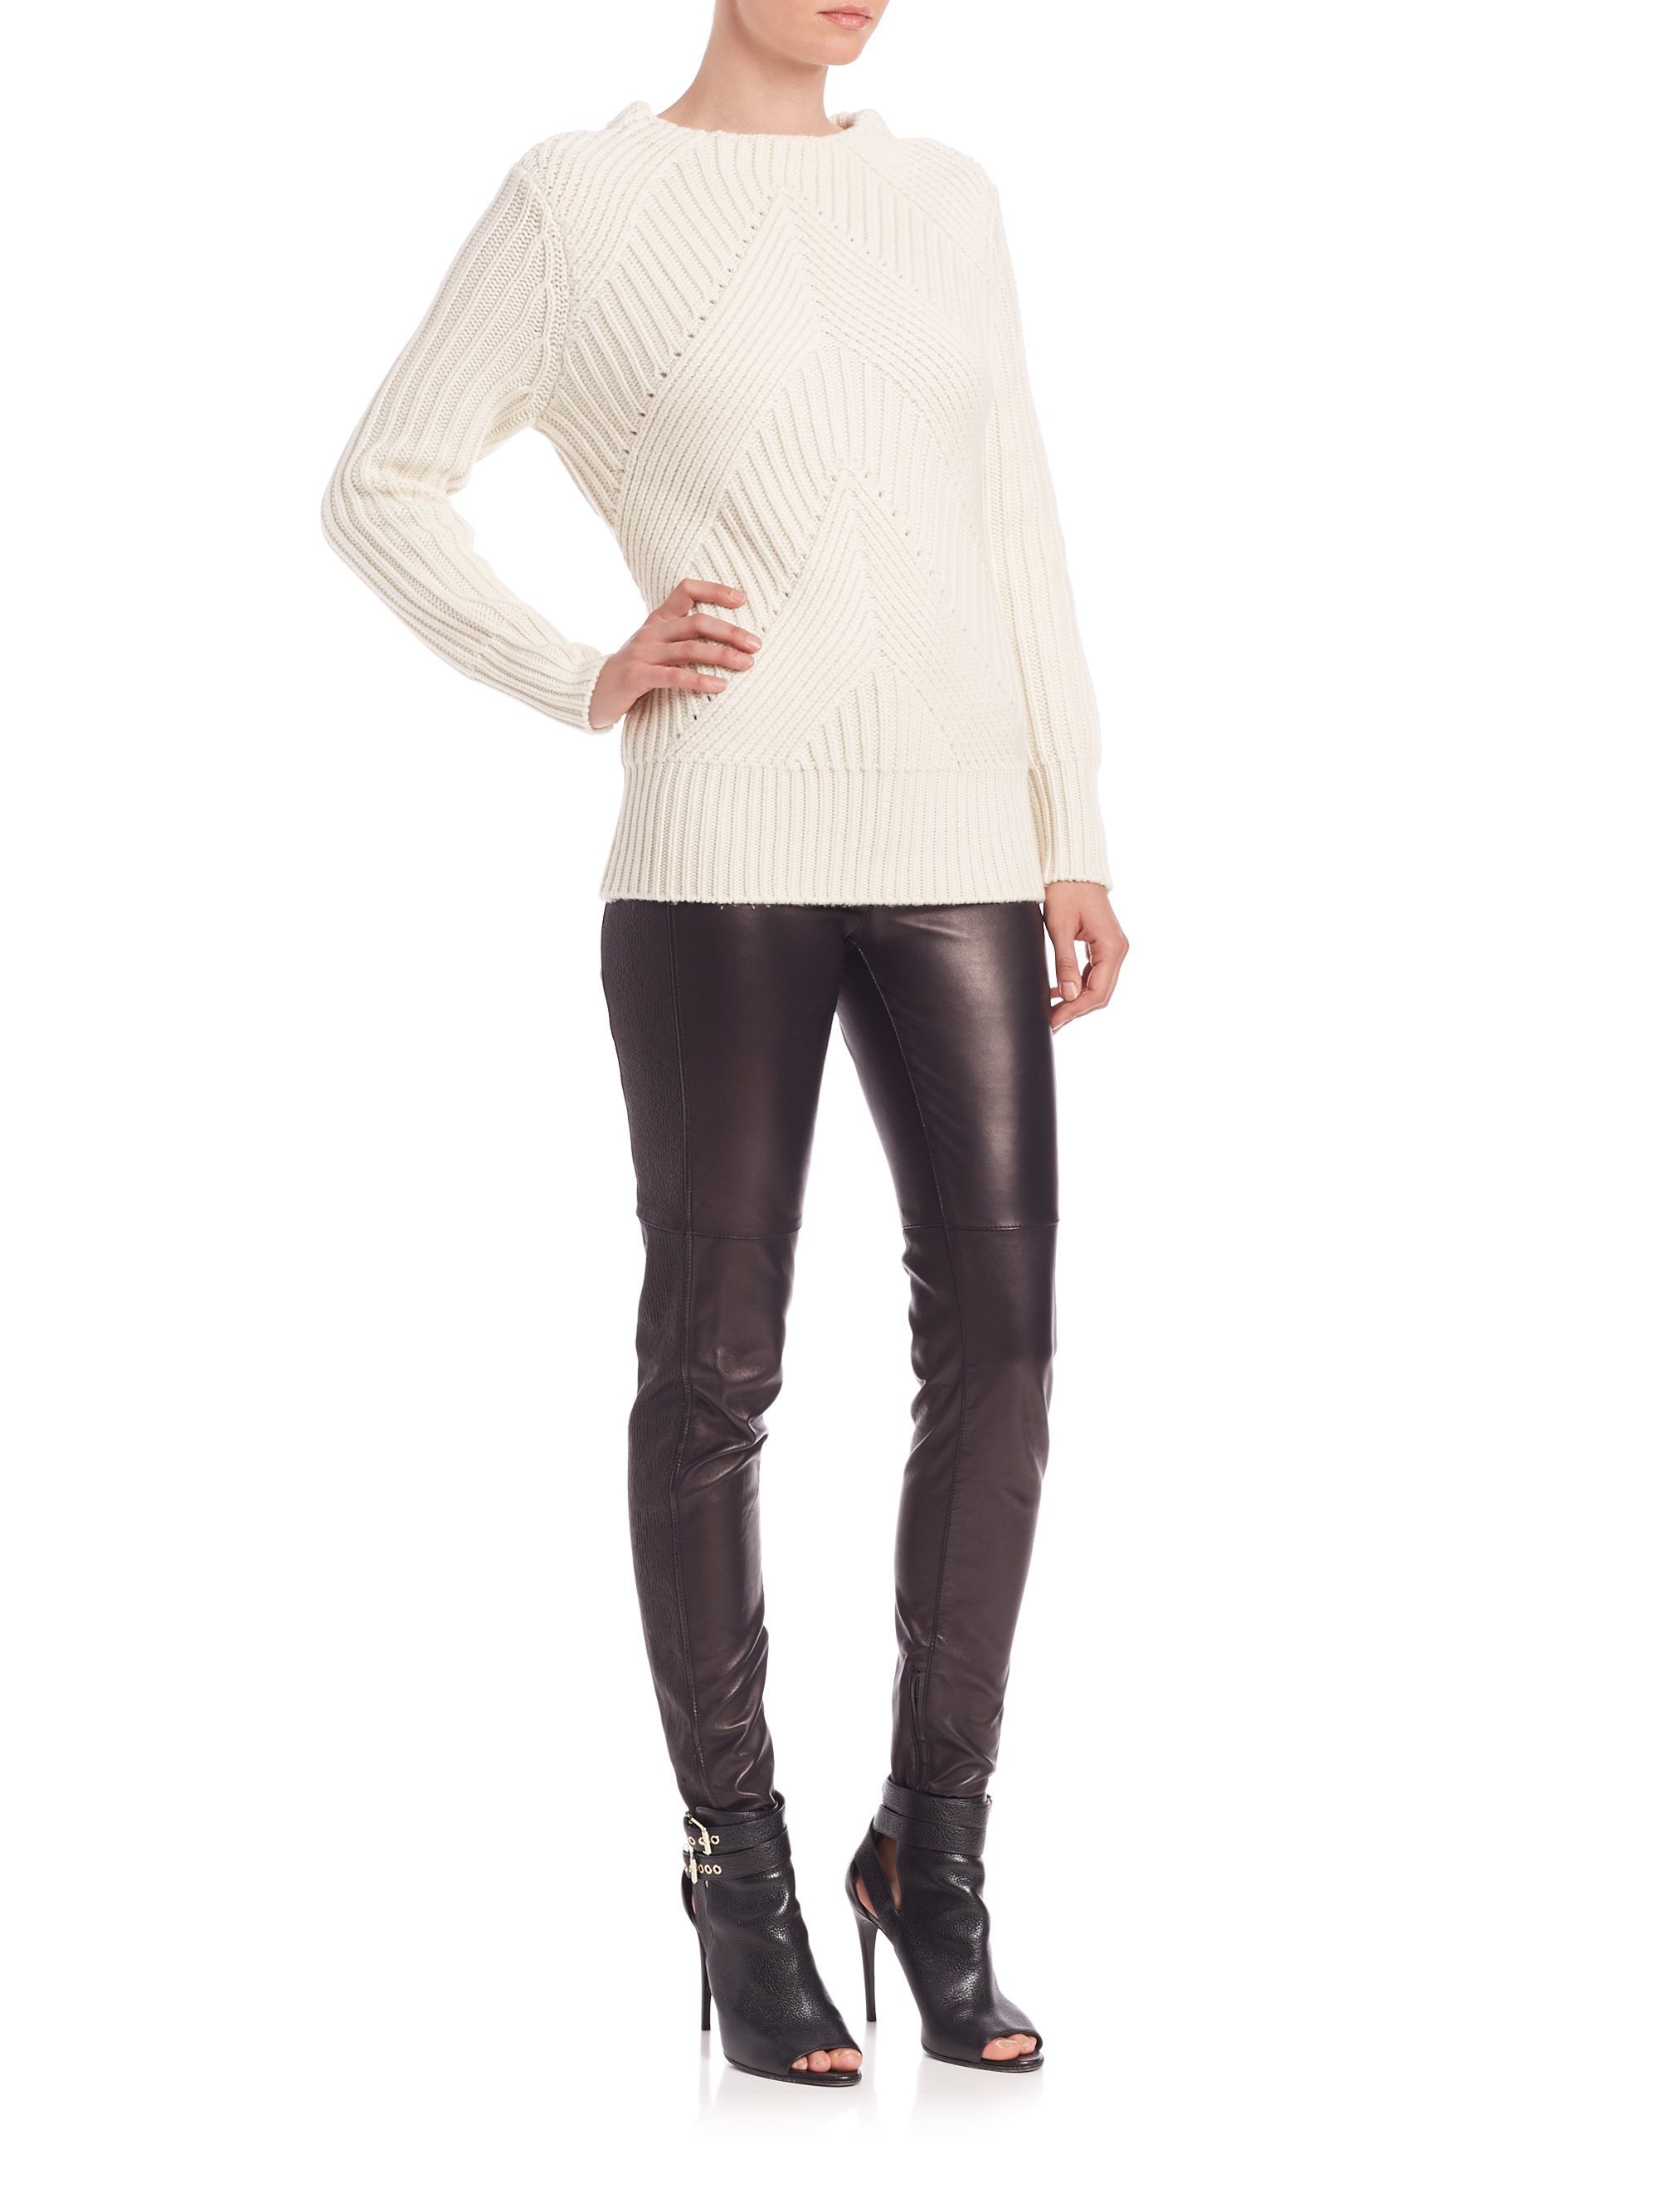 Burberry Wool & Cashmere Cable-knit Sweater in Natural | Lyst